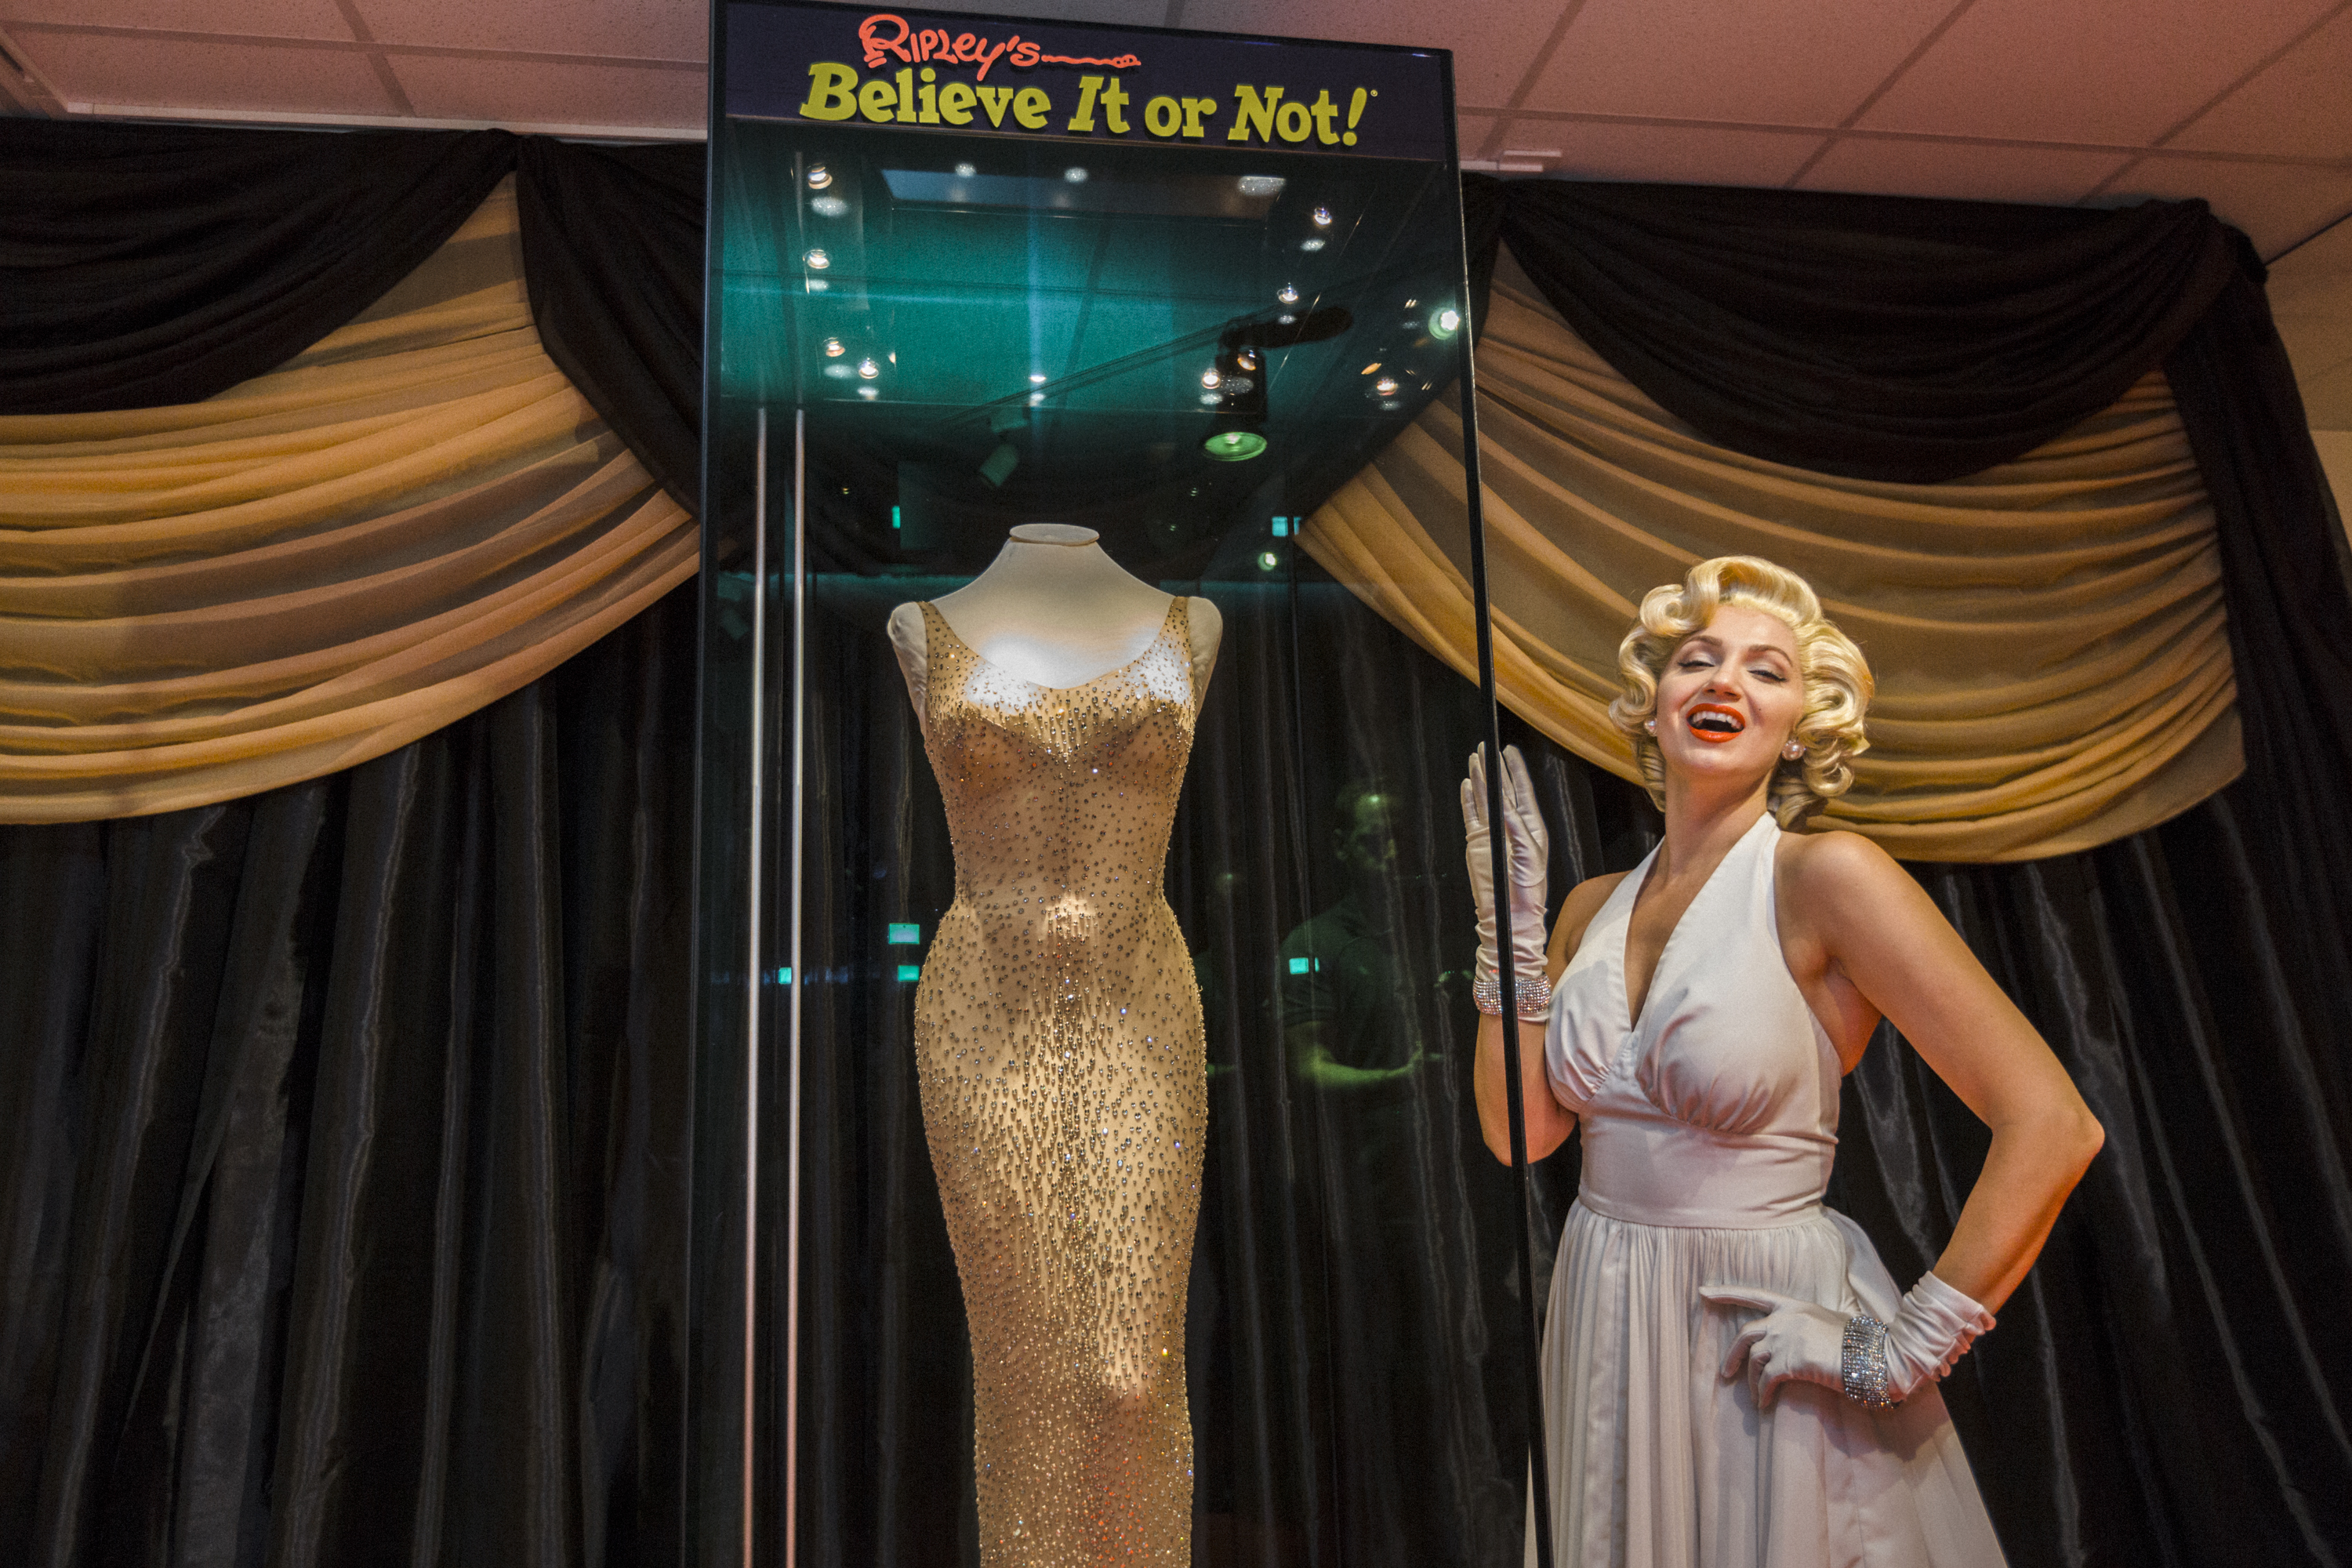 (Eric Kayne/AP Images for Ripley's Believe It or Not!)